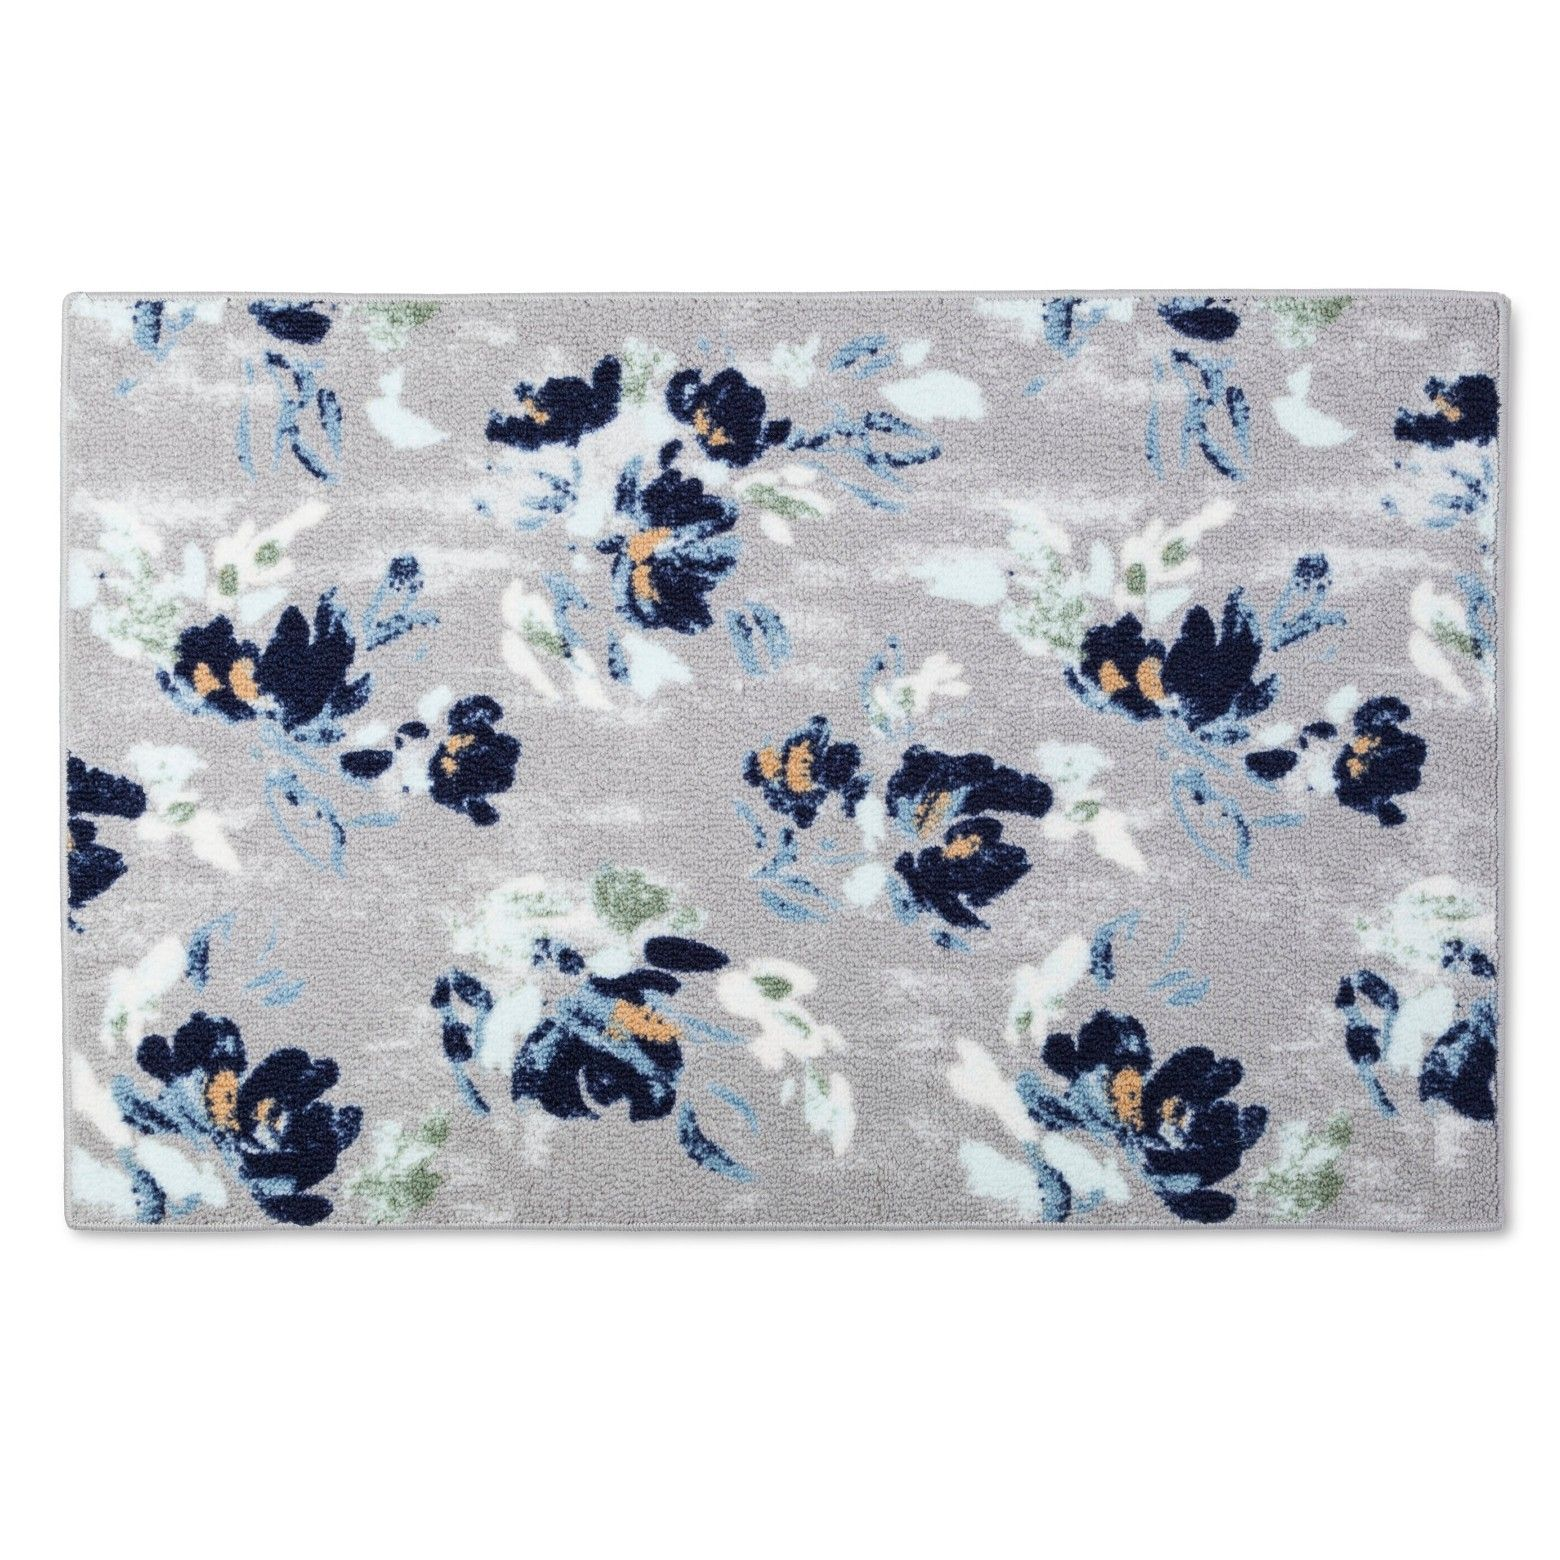 The Threshold Painterly Floral Kitchen Rug Features A Delicate